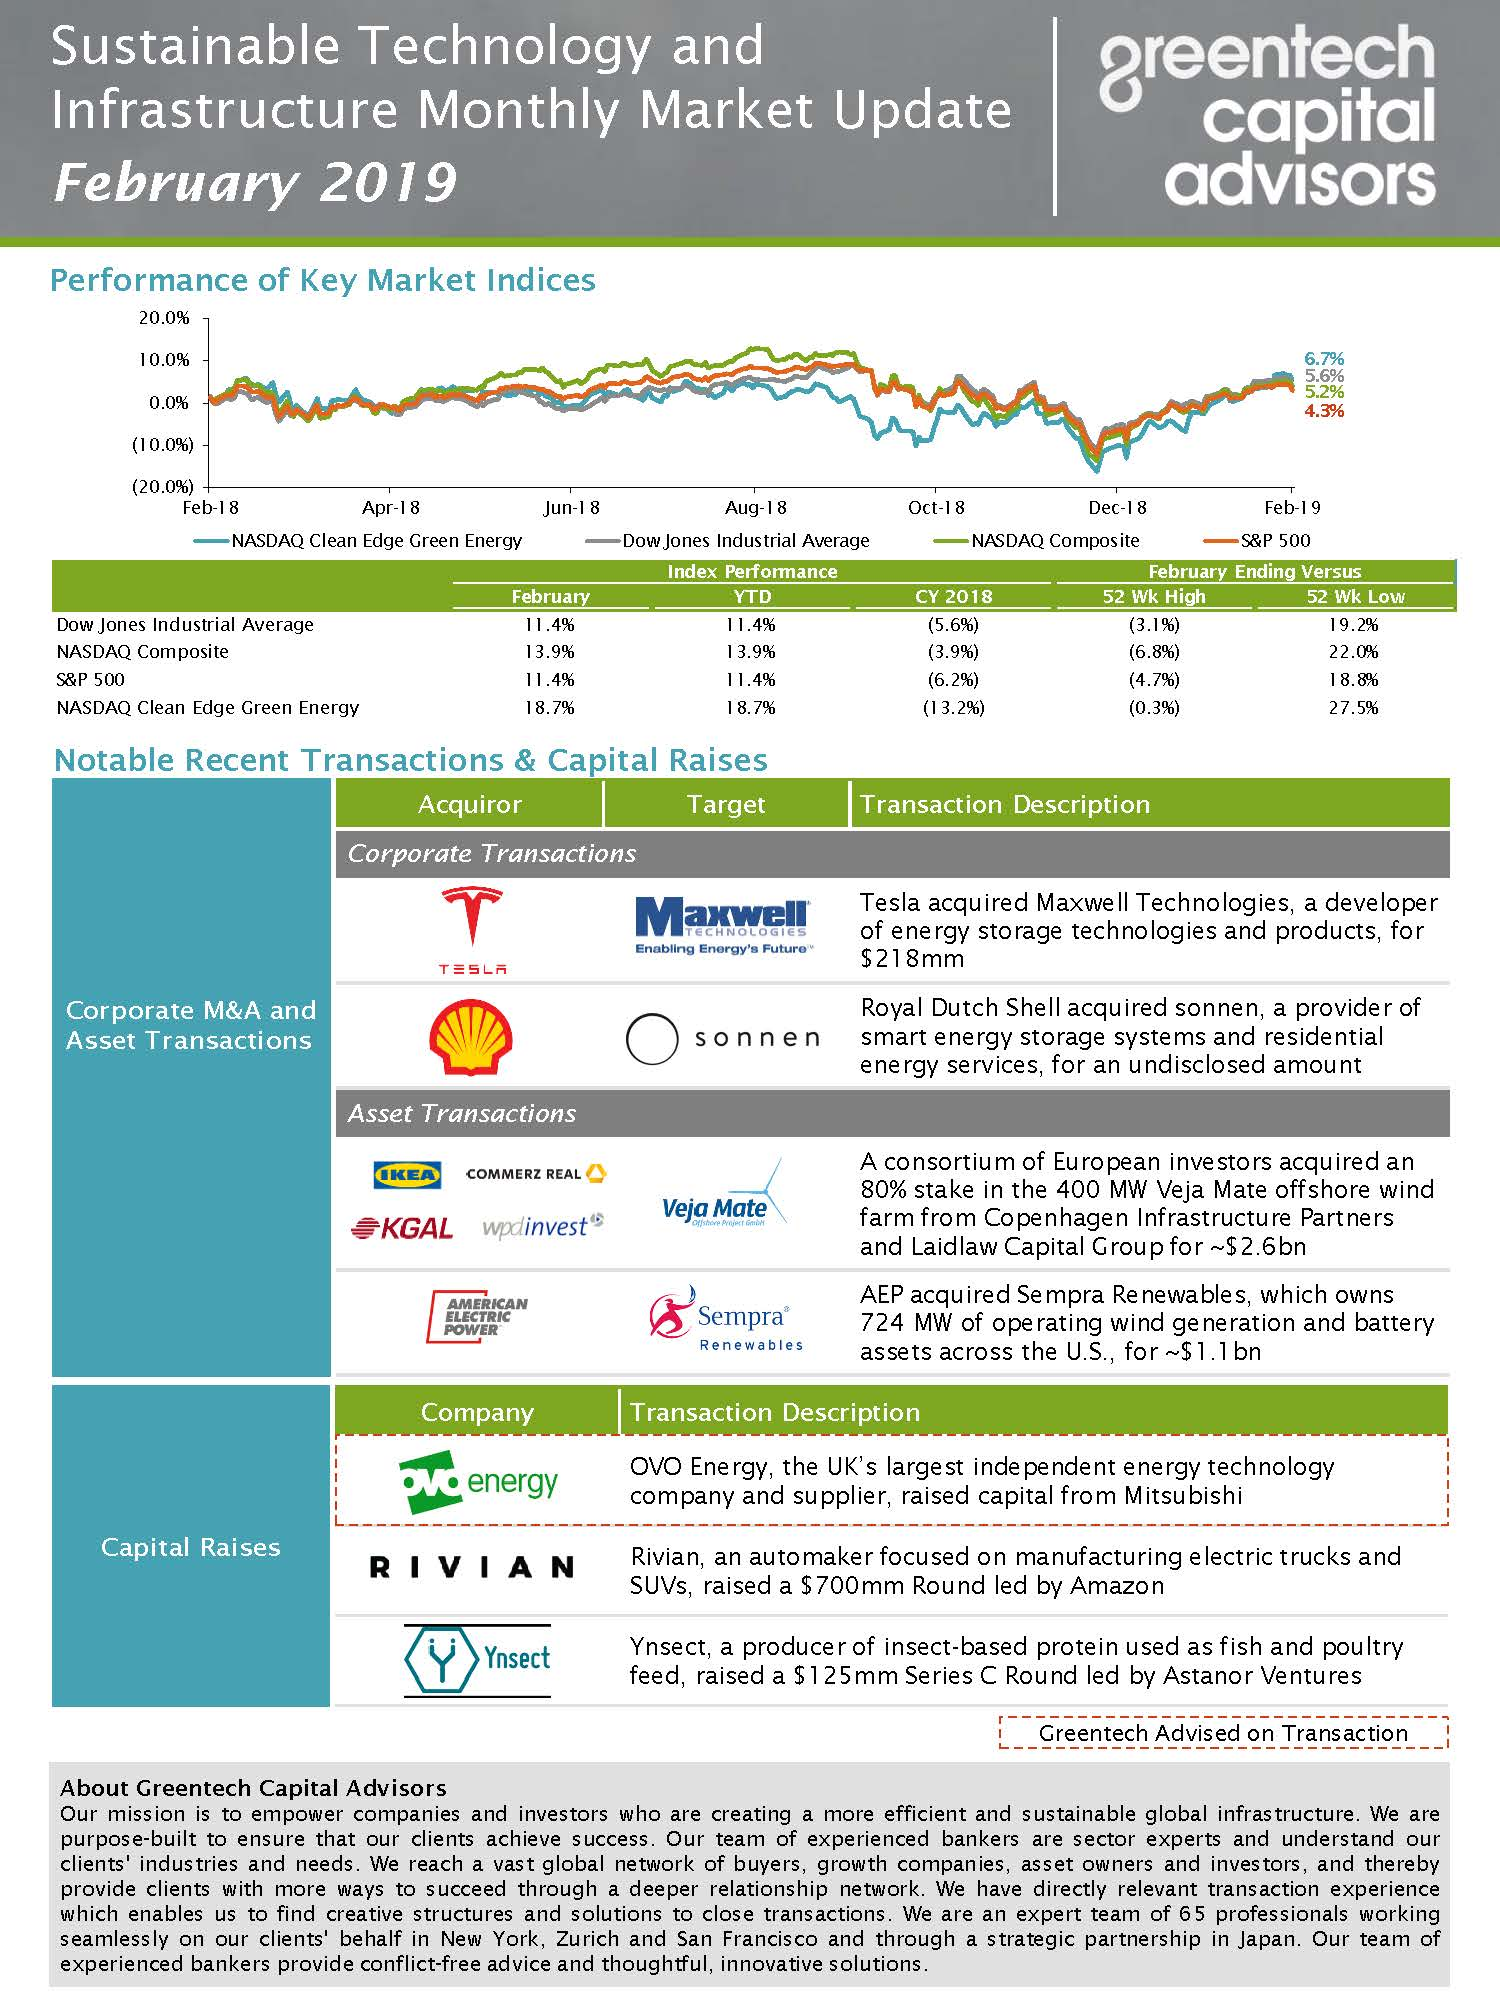 Sustainable Investing Monthly Market Update - Feb 2019